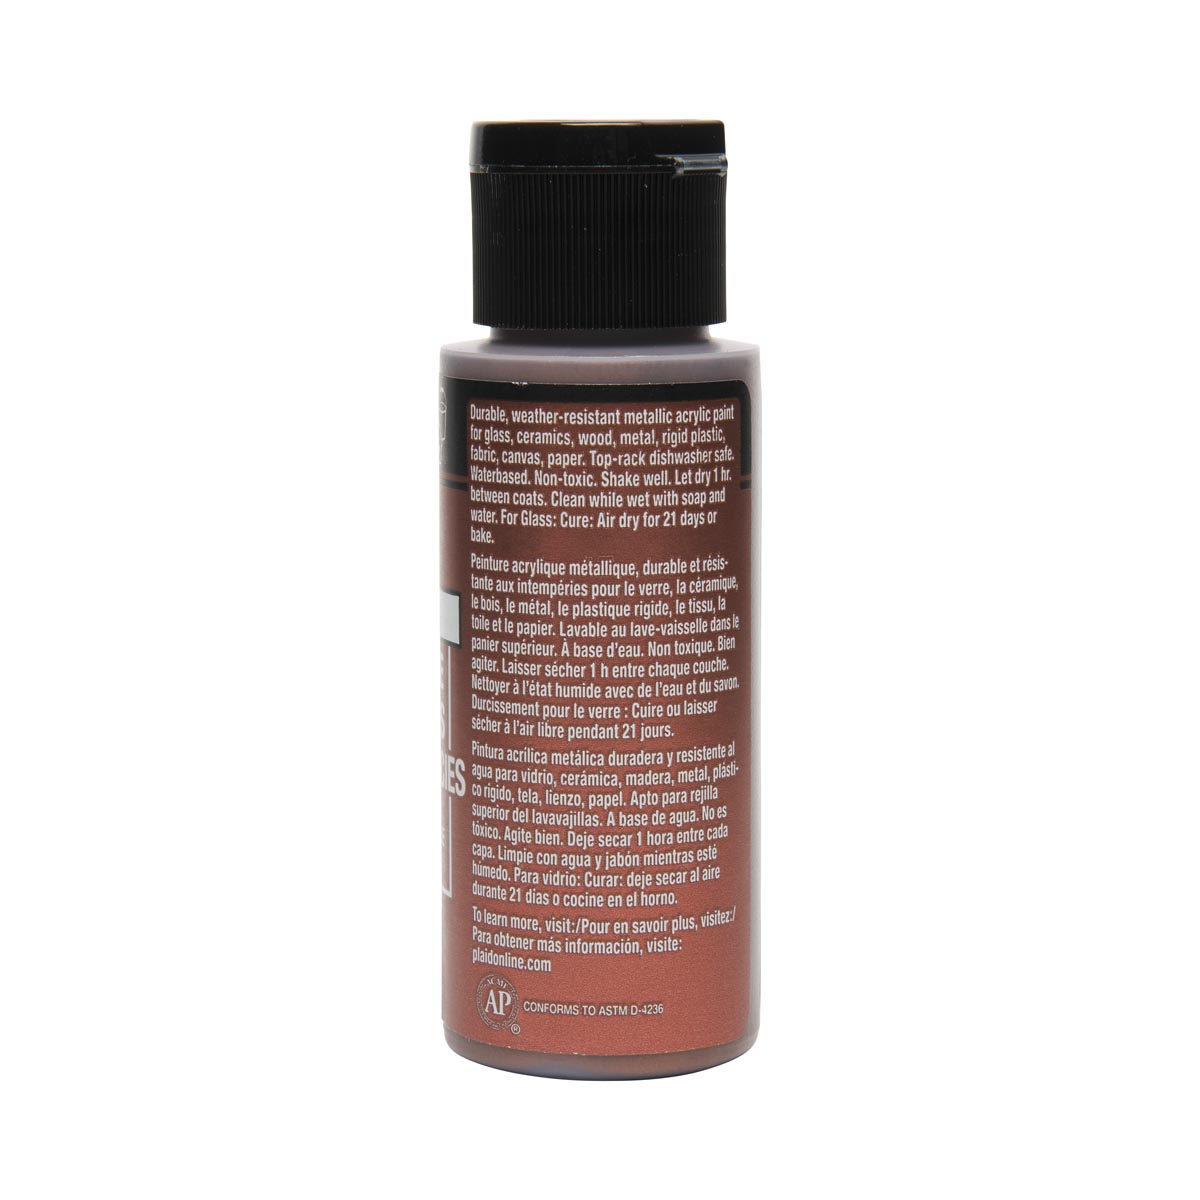 FolkArt ® Multi-Surface Metallic Acrylic Paints - Antique Copper, 2 oz. - 6306